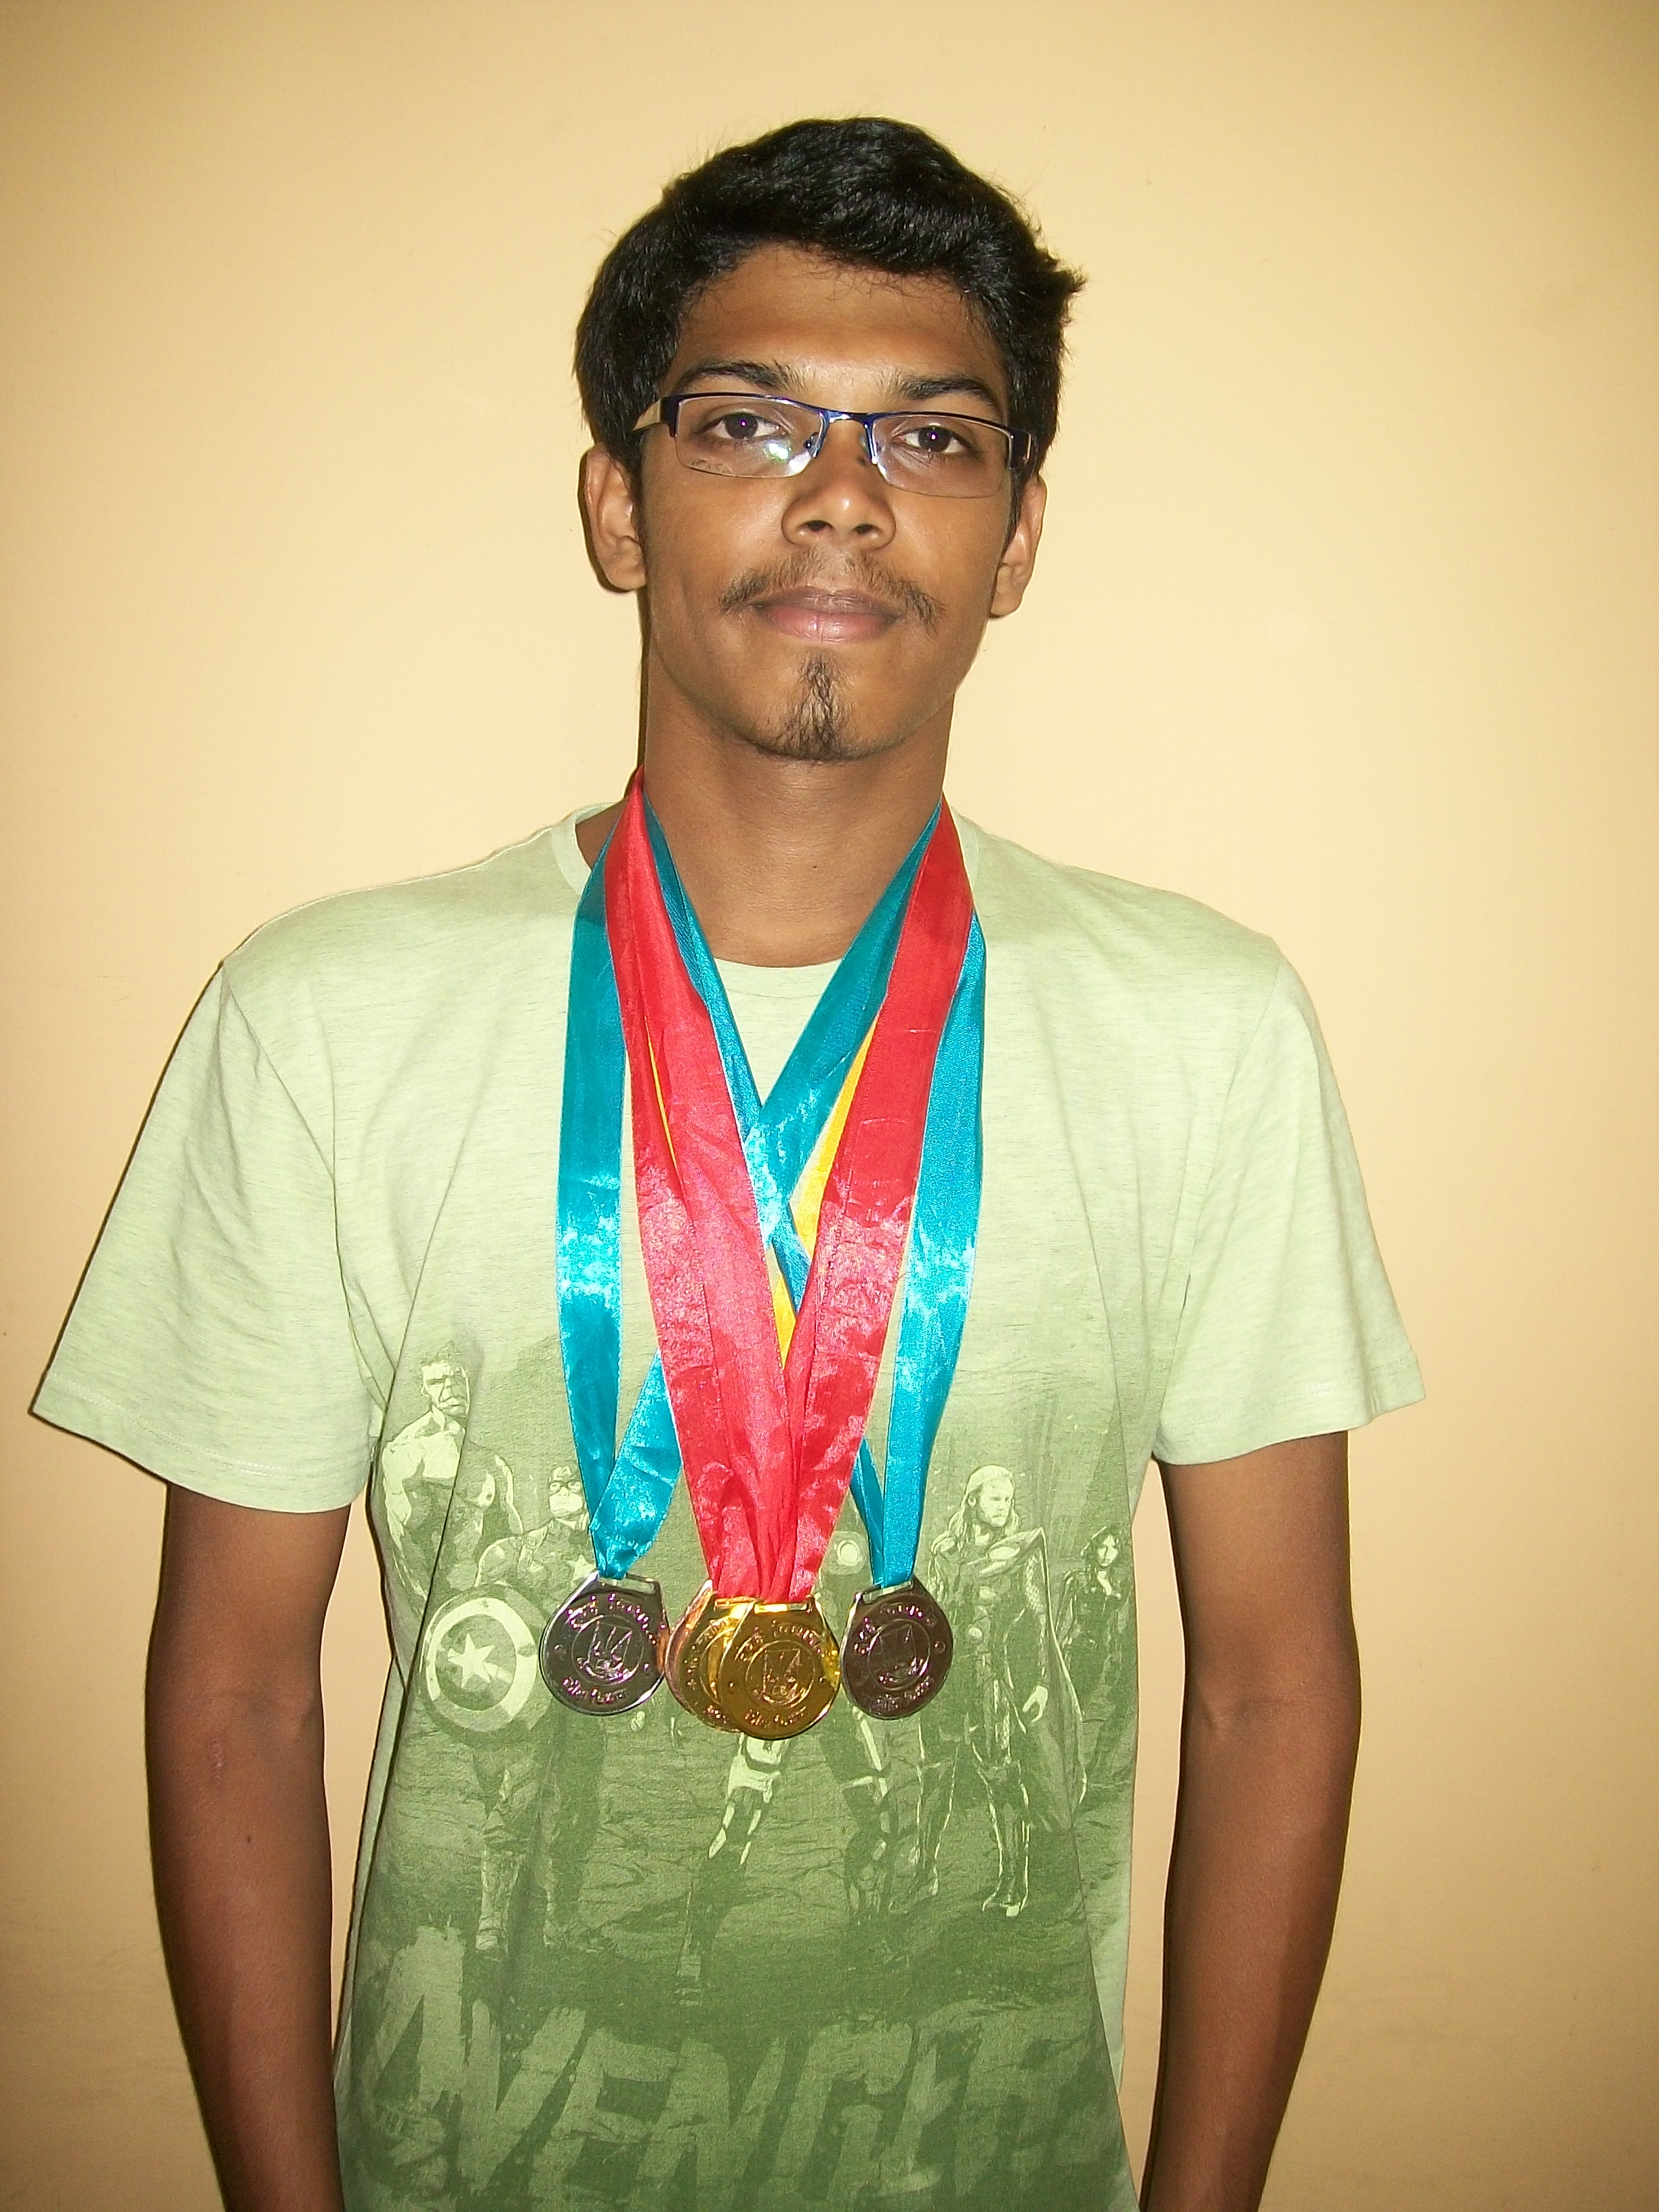 Mr. Atharva Dandekar winner of 5 Medals UNiversity of Mumbai Inter-Collegiate Swimming Competition